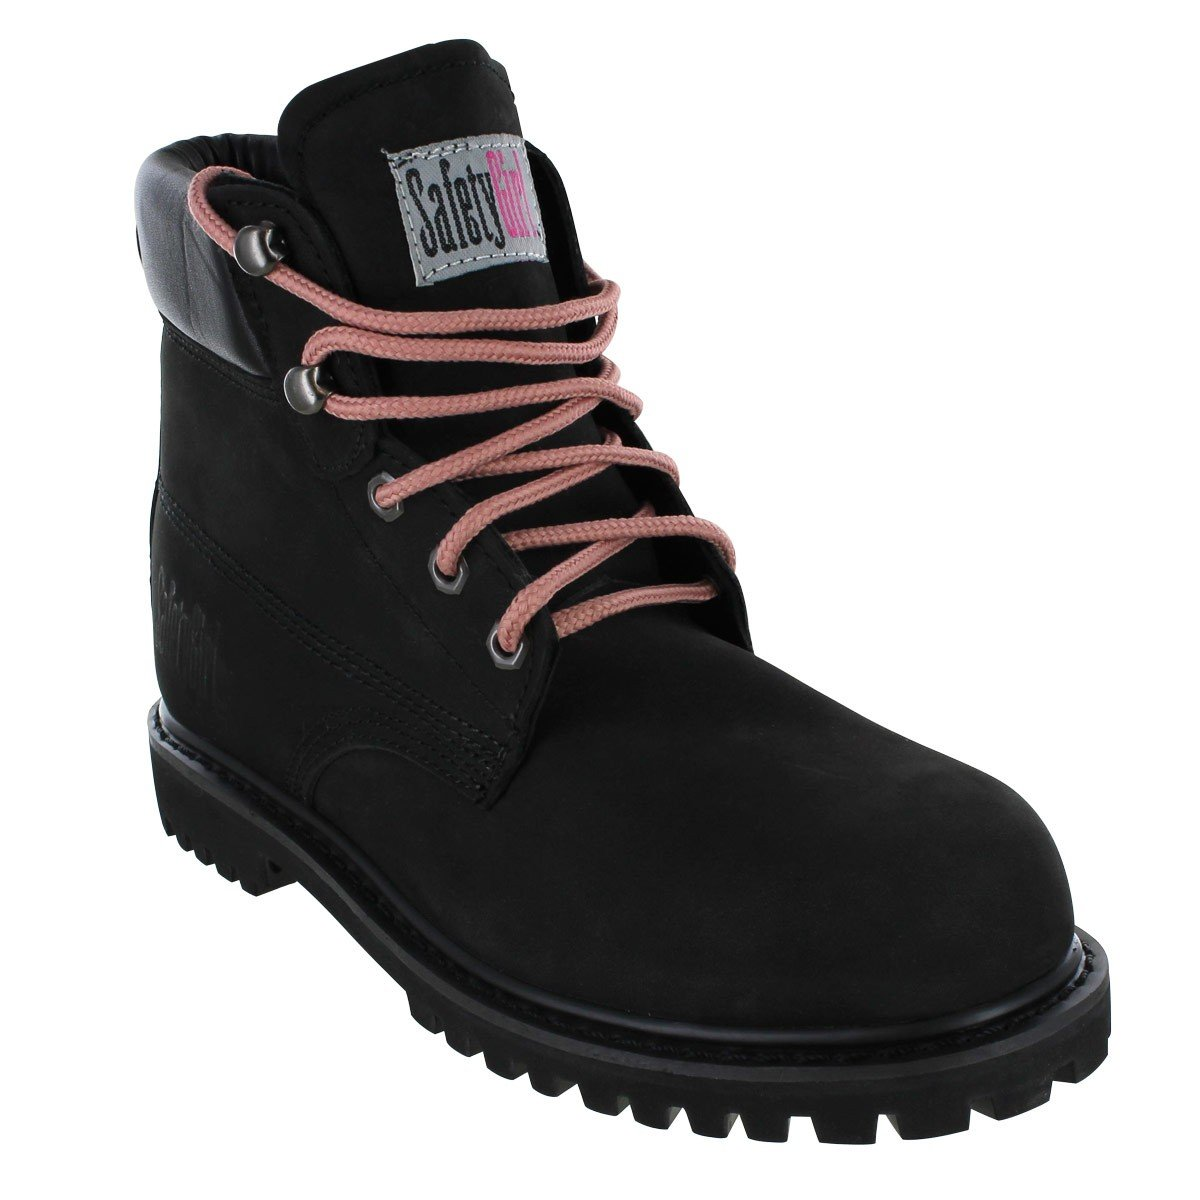 Safety Girl II Steel Toe Work Boots - Black by Safety Girl (Image #2)